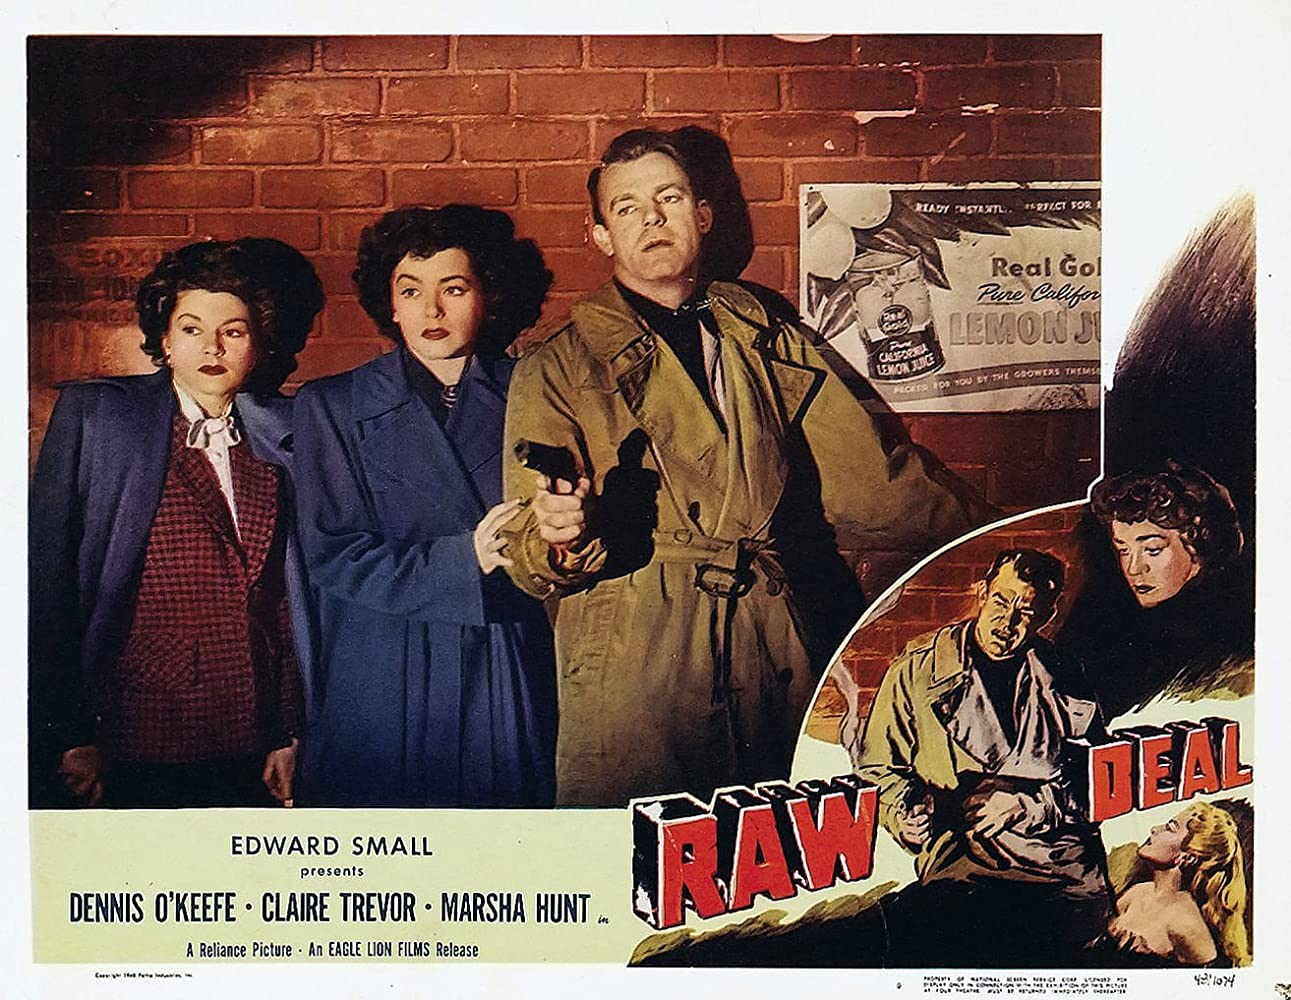 Marsha Hunt, Dennis O'Keefe, and Claire Trevor in Raw Deal (1948)